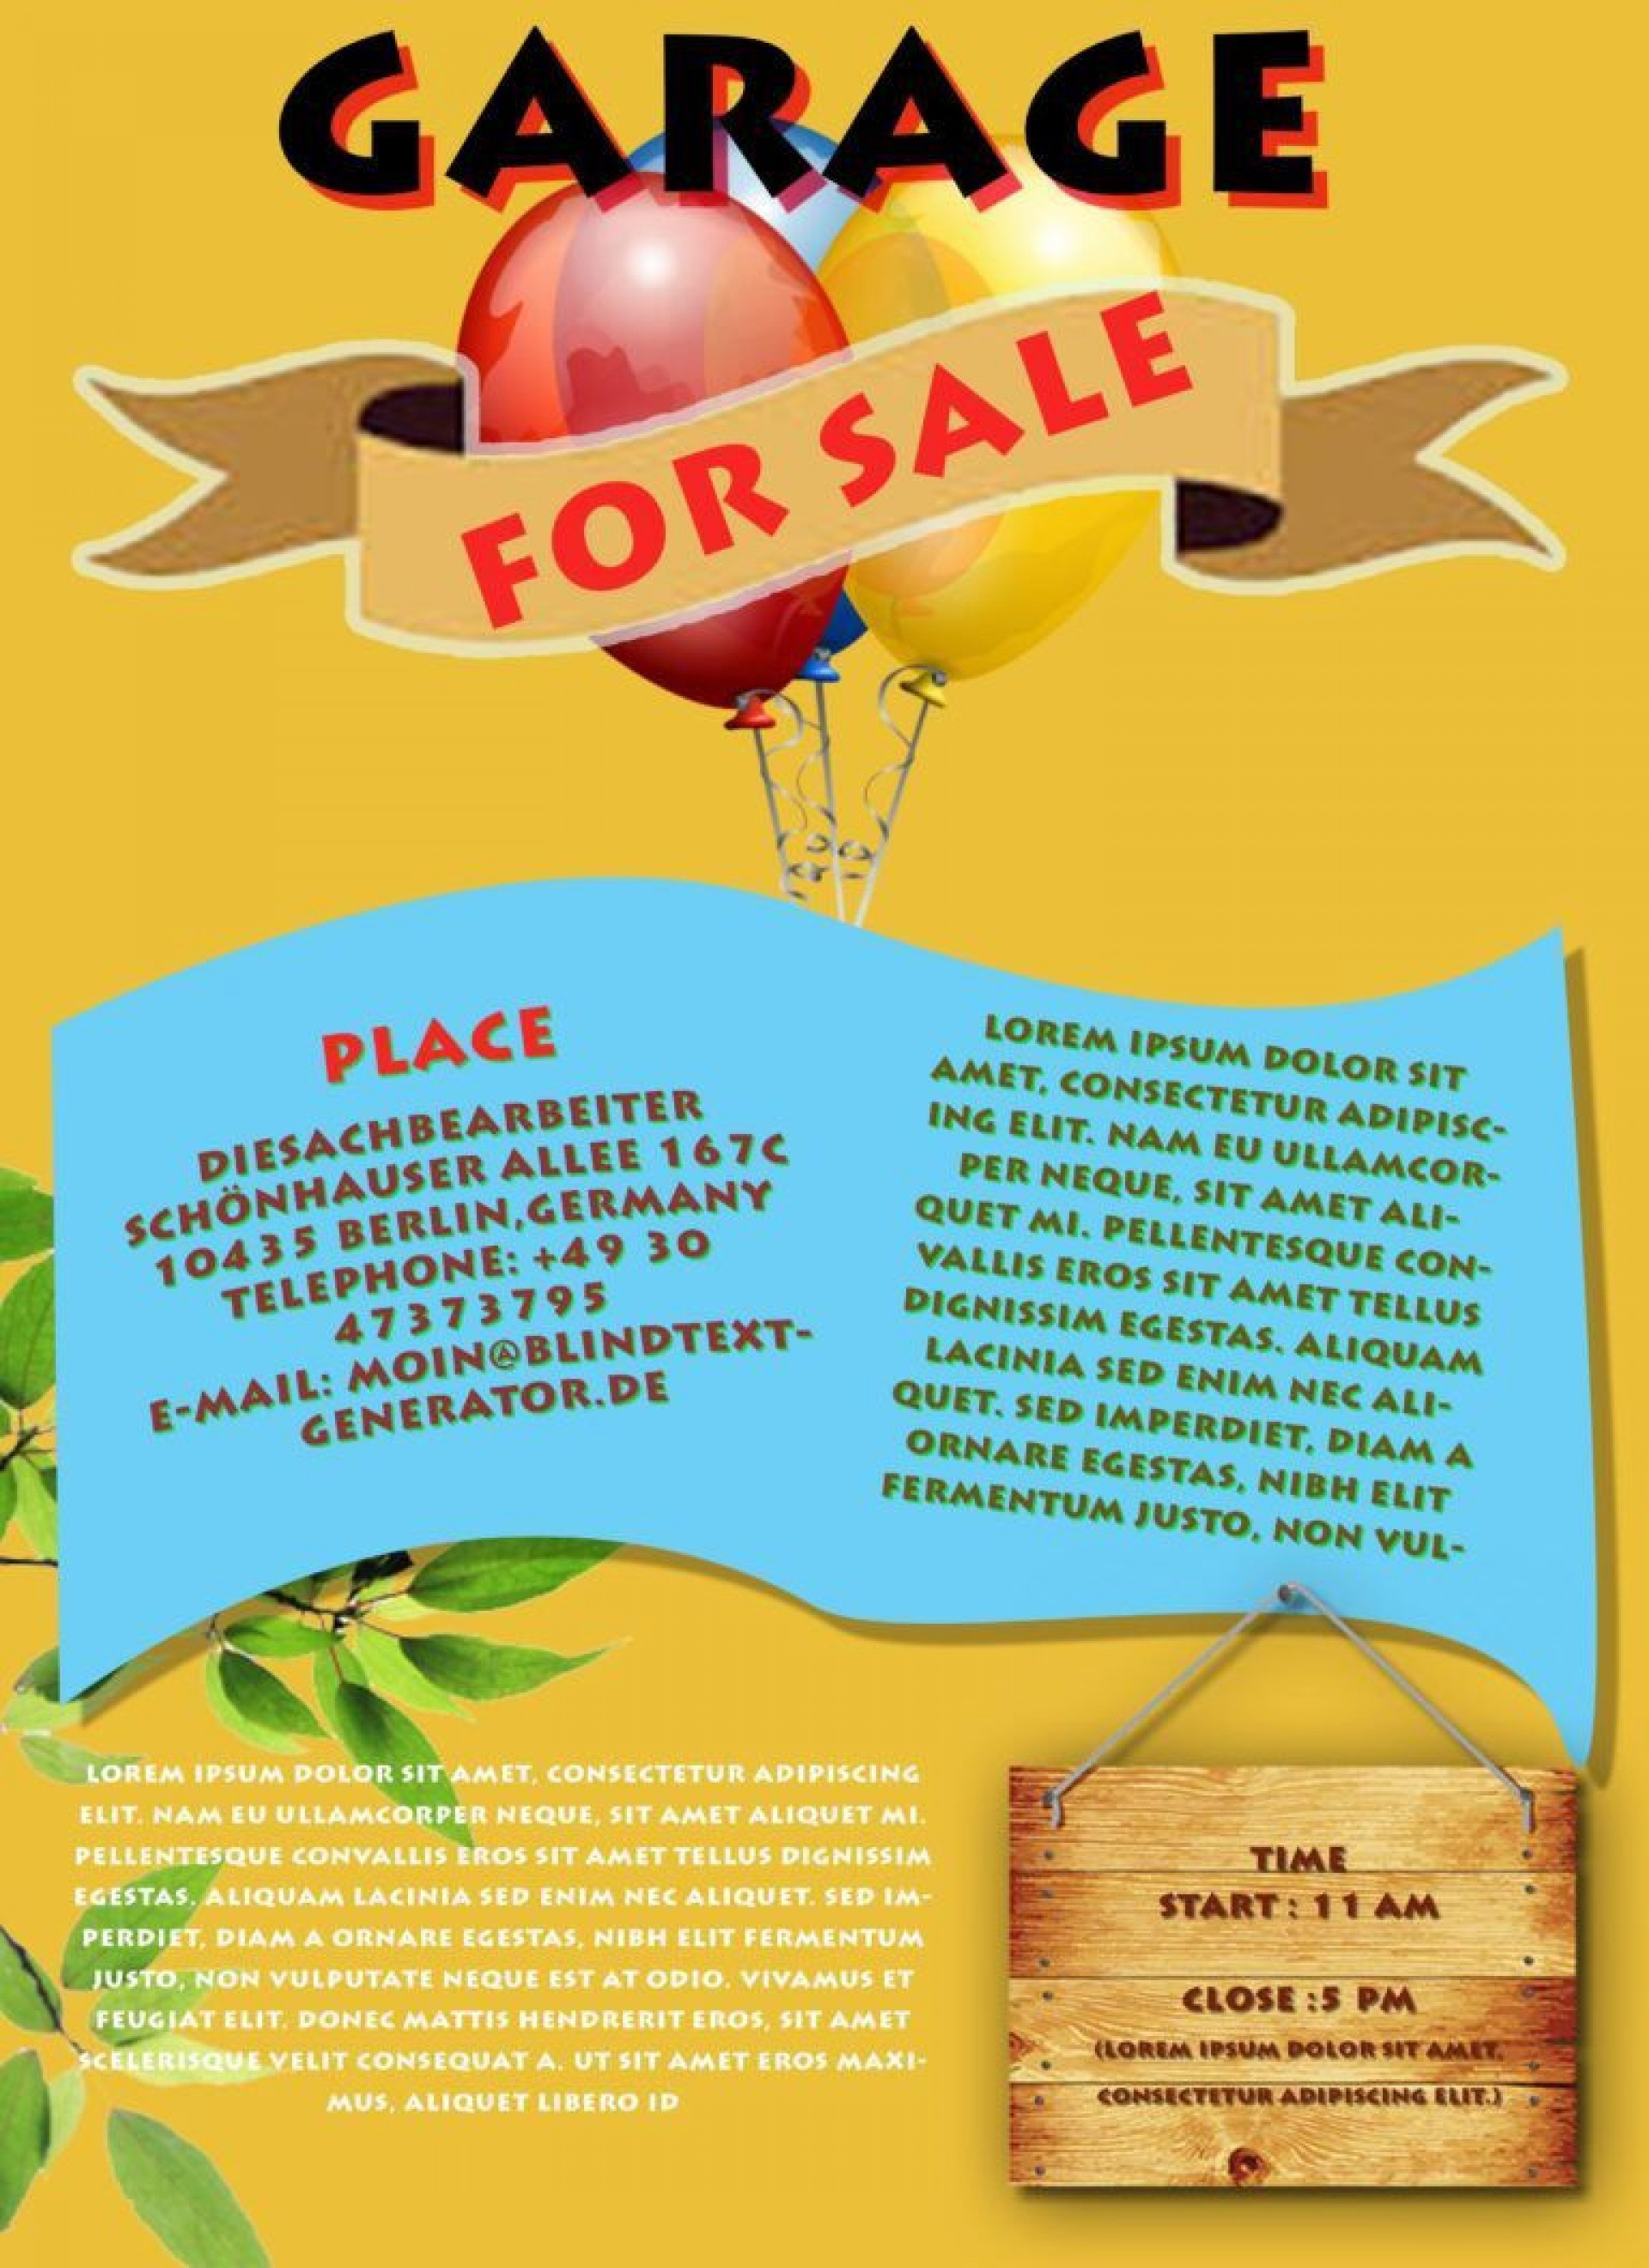 009 Rare Yard Sale Flyer Template Free Idea  Community Garage1920